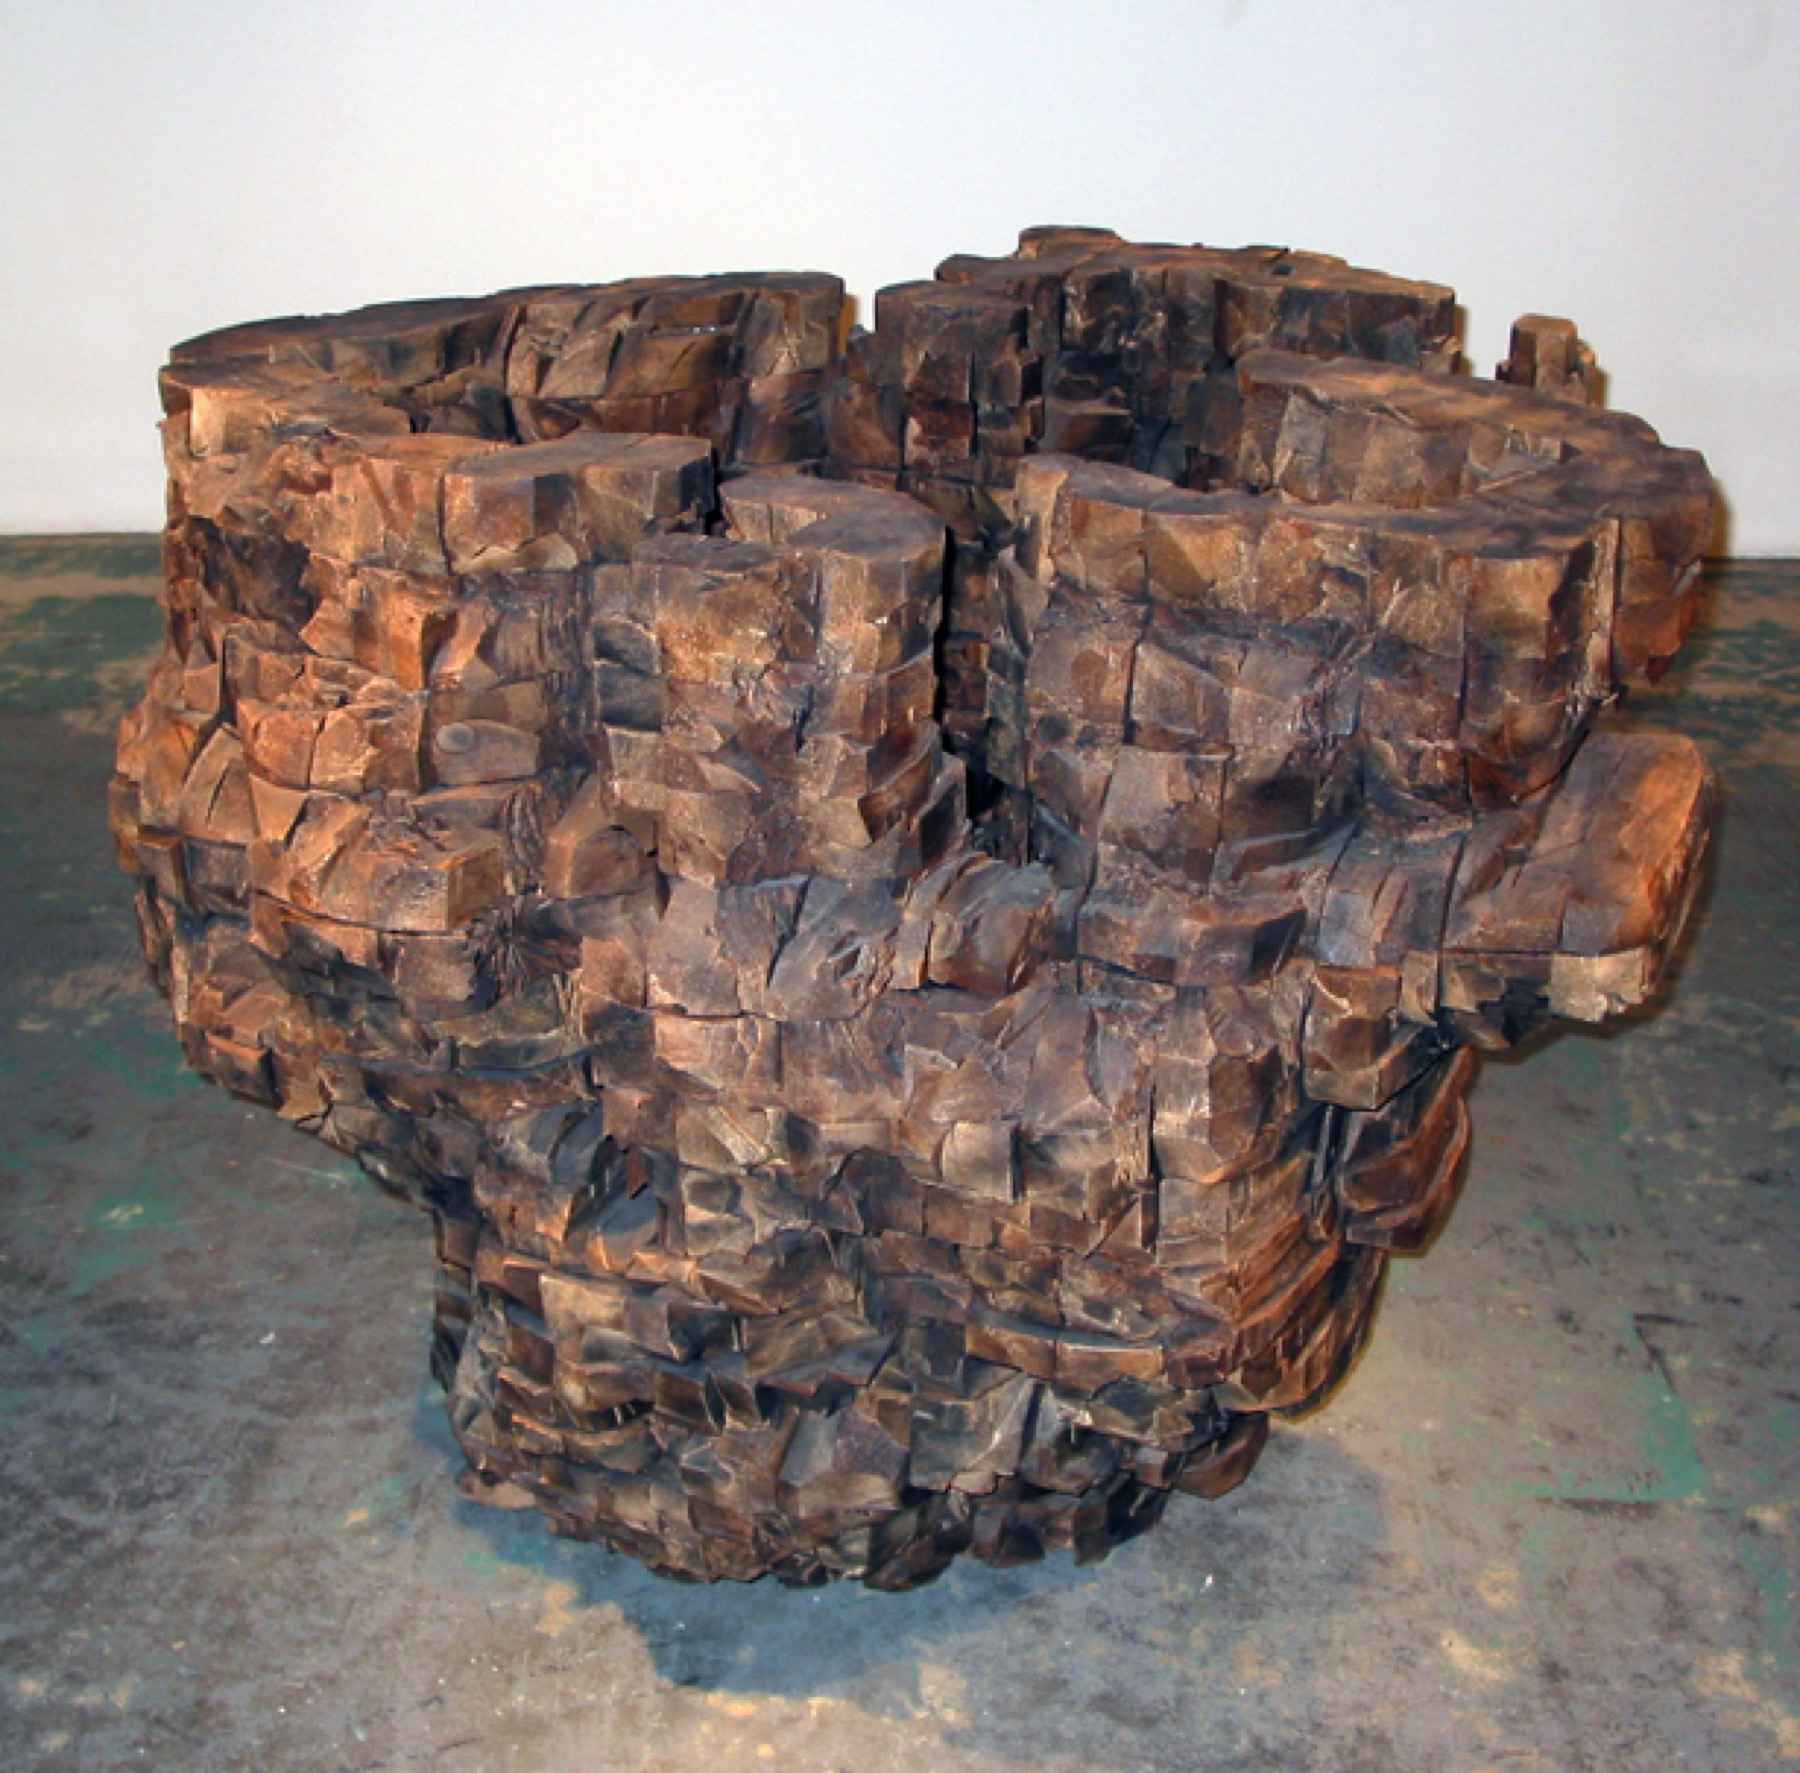 Image of Ursula von Ryndingsvard, Untitled (Big Bowl), 1998